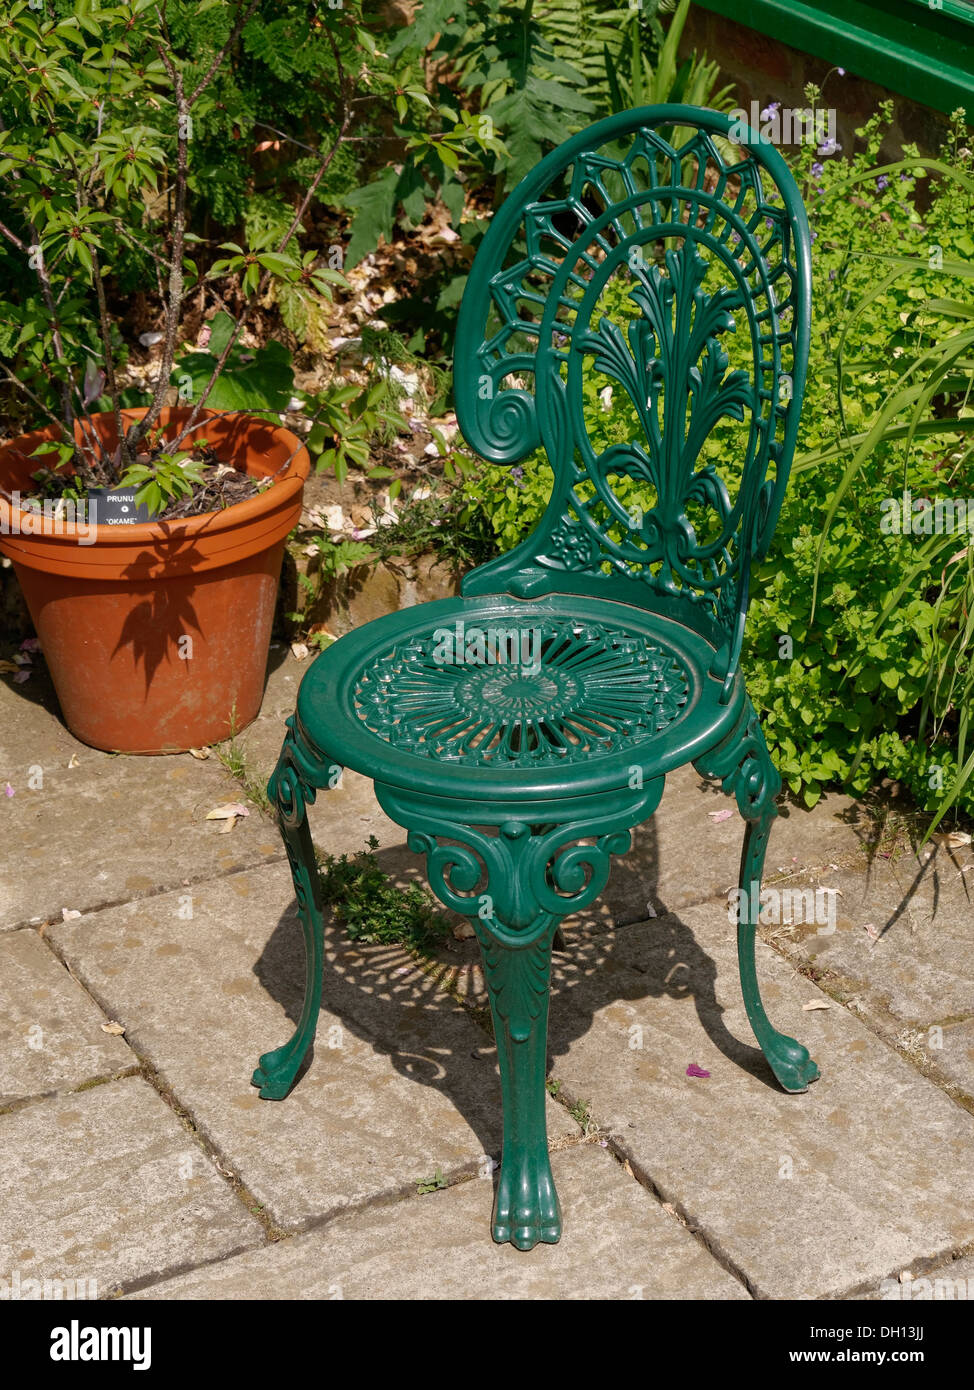 Green painted ornate cast metal garden chair on slabbed ...